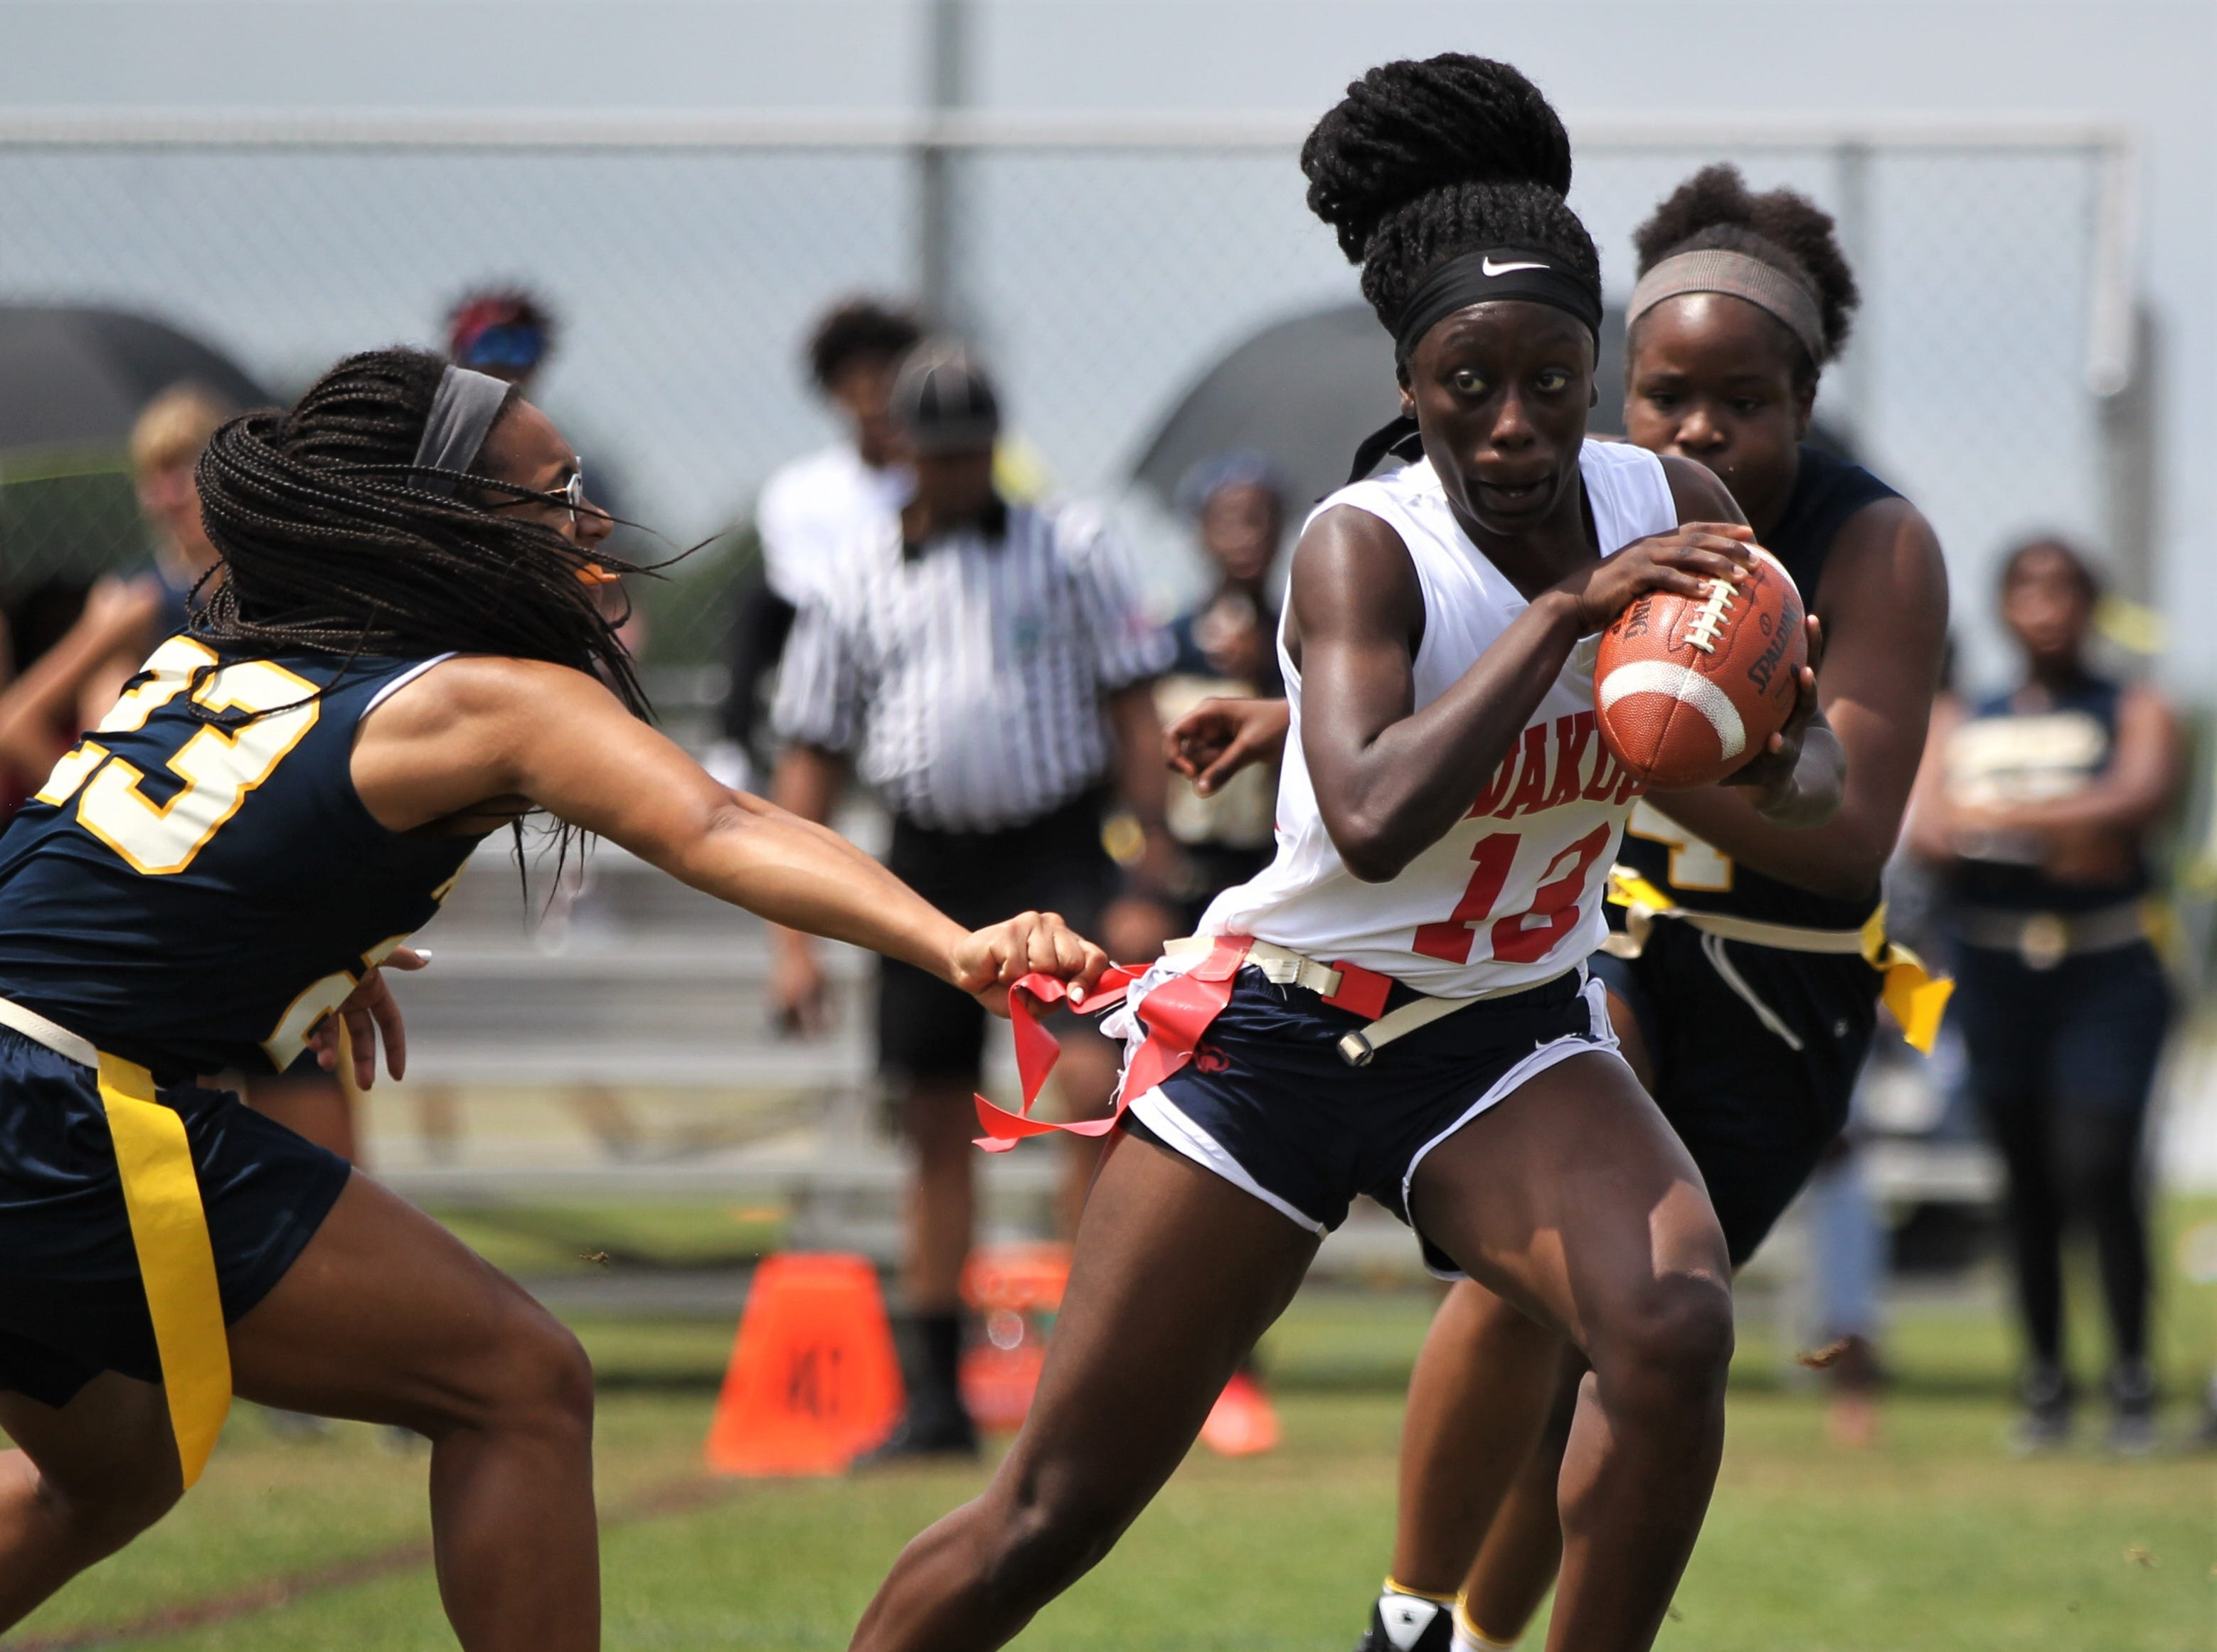 Wakulla's Ja'daa Wilson tries to excape a Pompano Beach flag pull in the 2019 Capital City Classic flag football tournament at the FSU Rec SportsPlex on April 6, 2019.